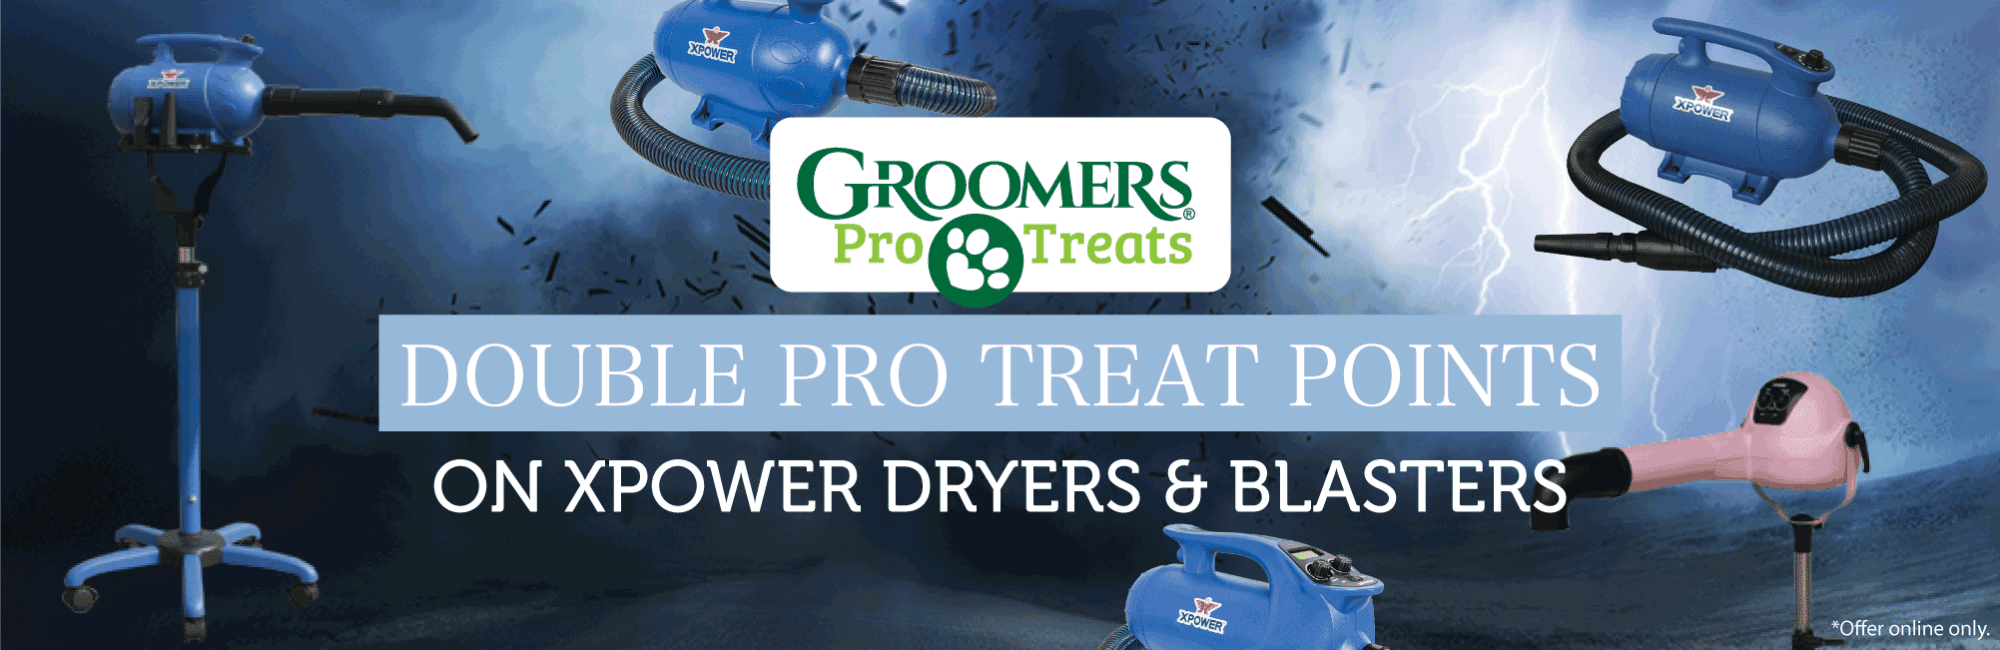 Double Pro Treat Points on XPower Dryers and Blasters